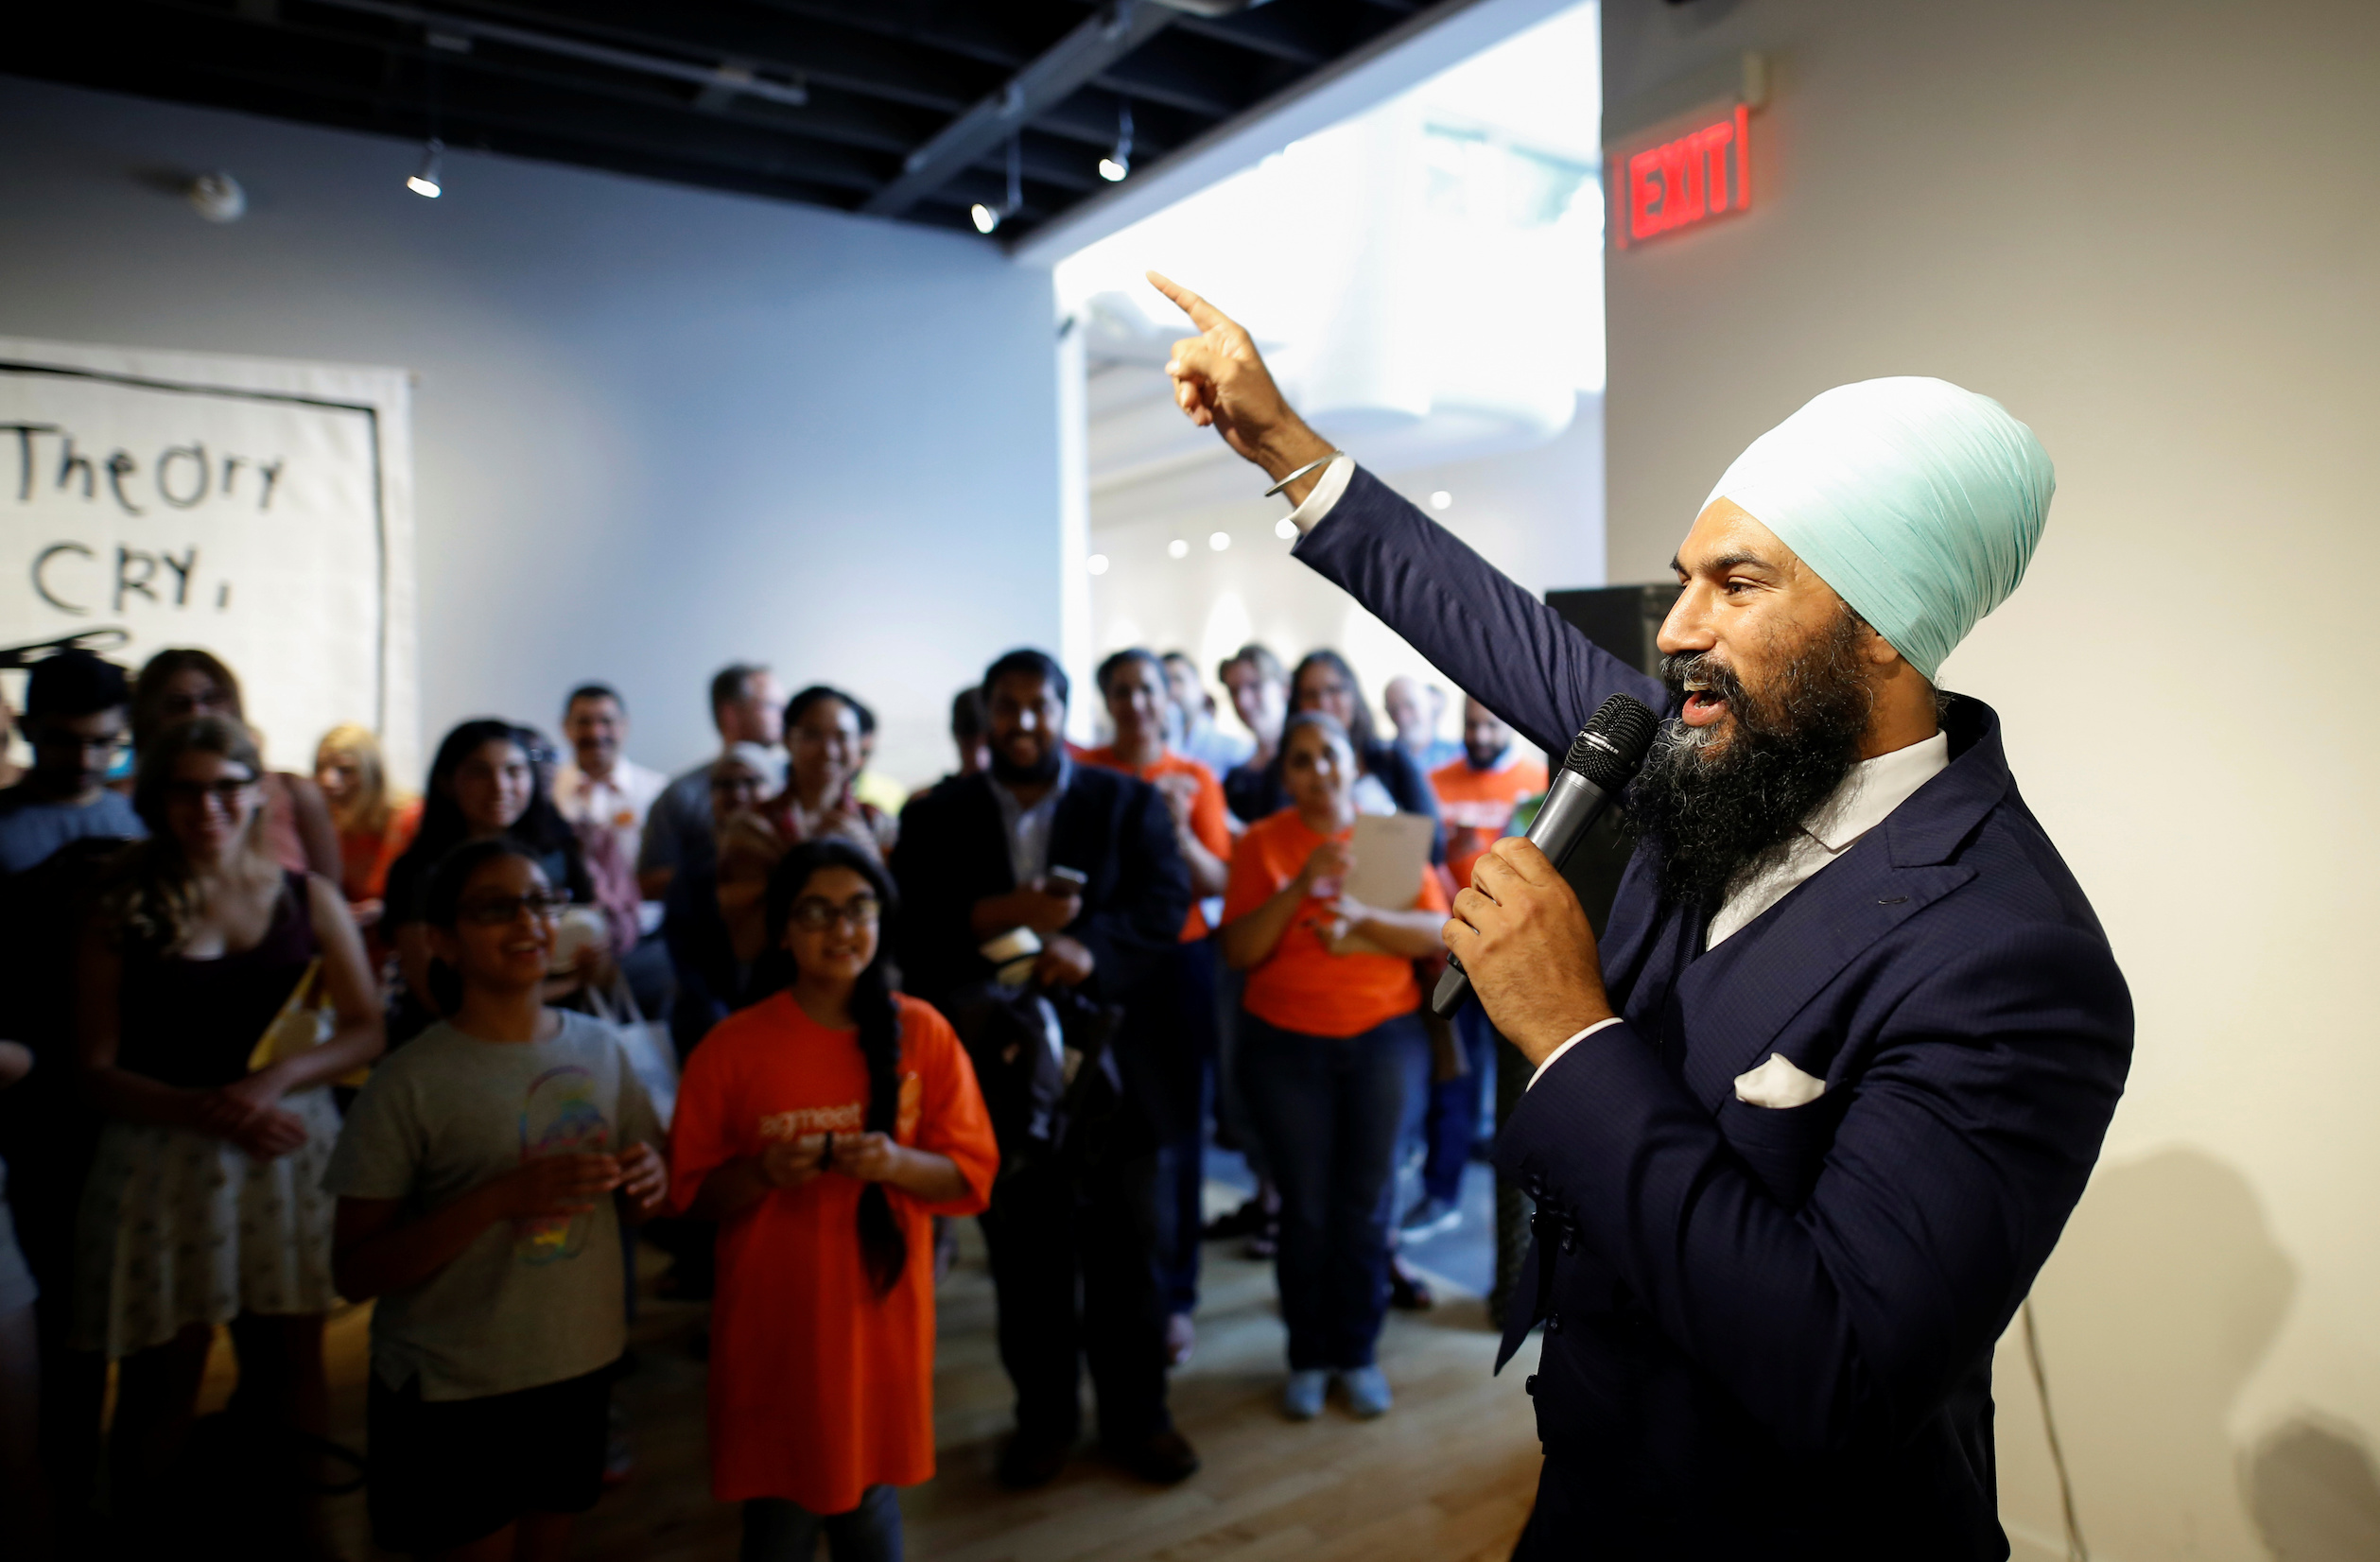 New Democratic Party candidate Jagmeet Singh speaks at an event in Hamilton, Ontario, Canada, on July 17, 2017.